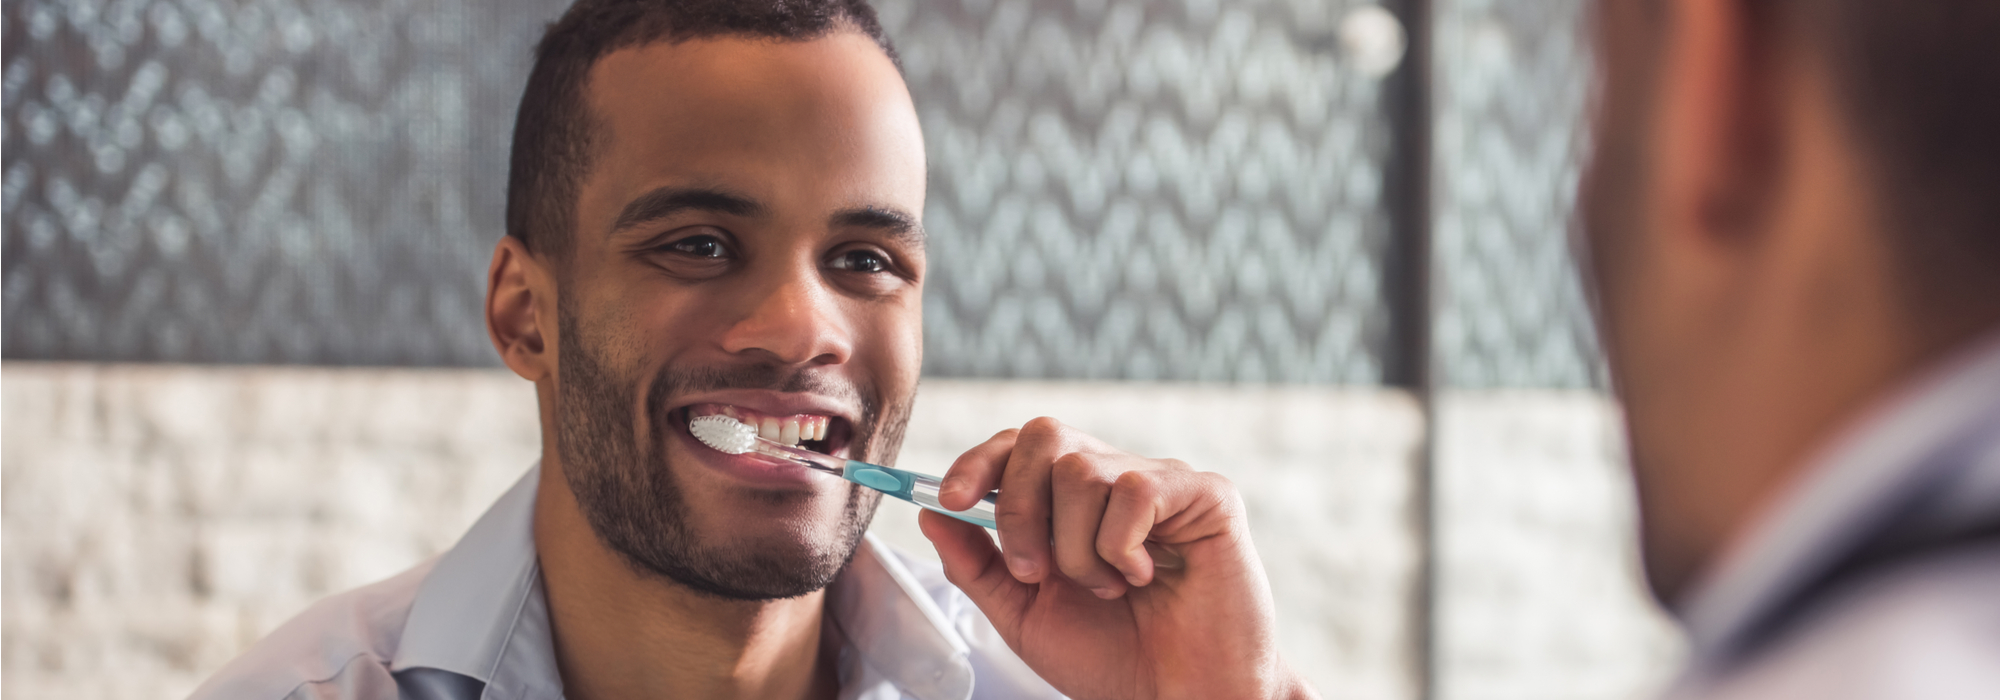 how to choose the right toothbrush for you